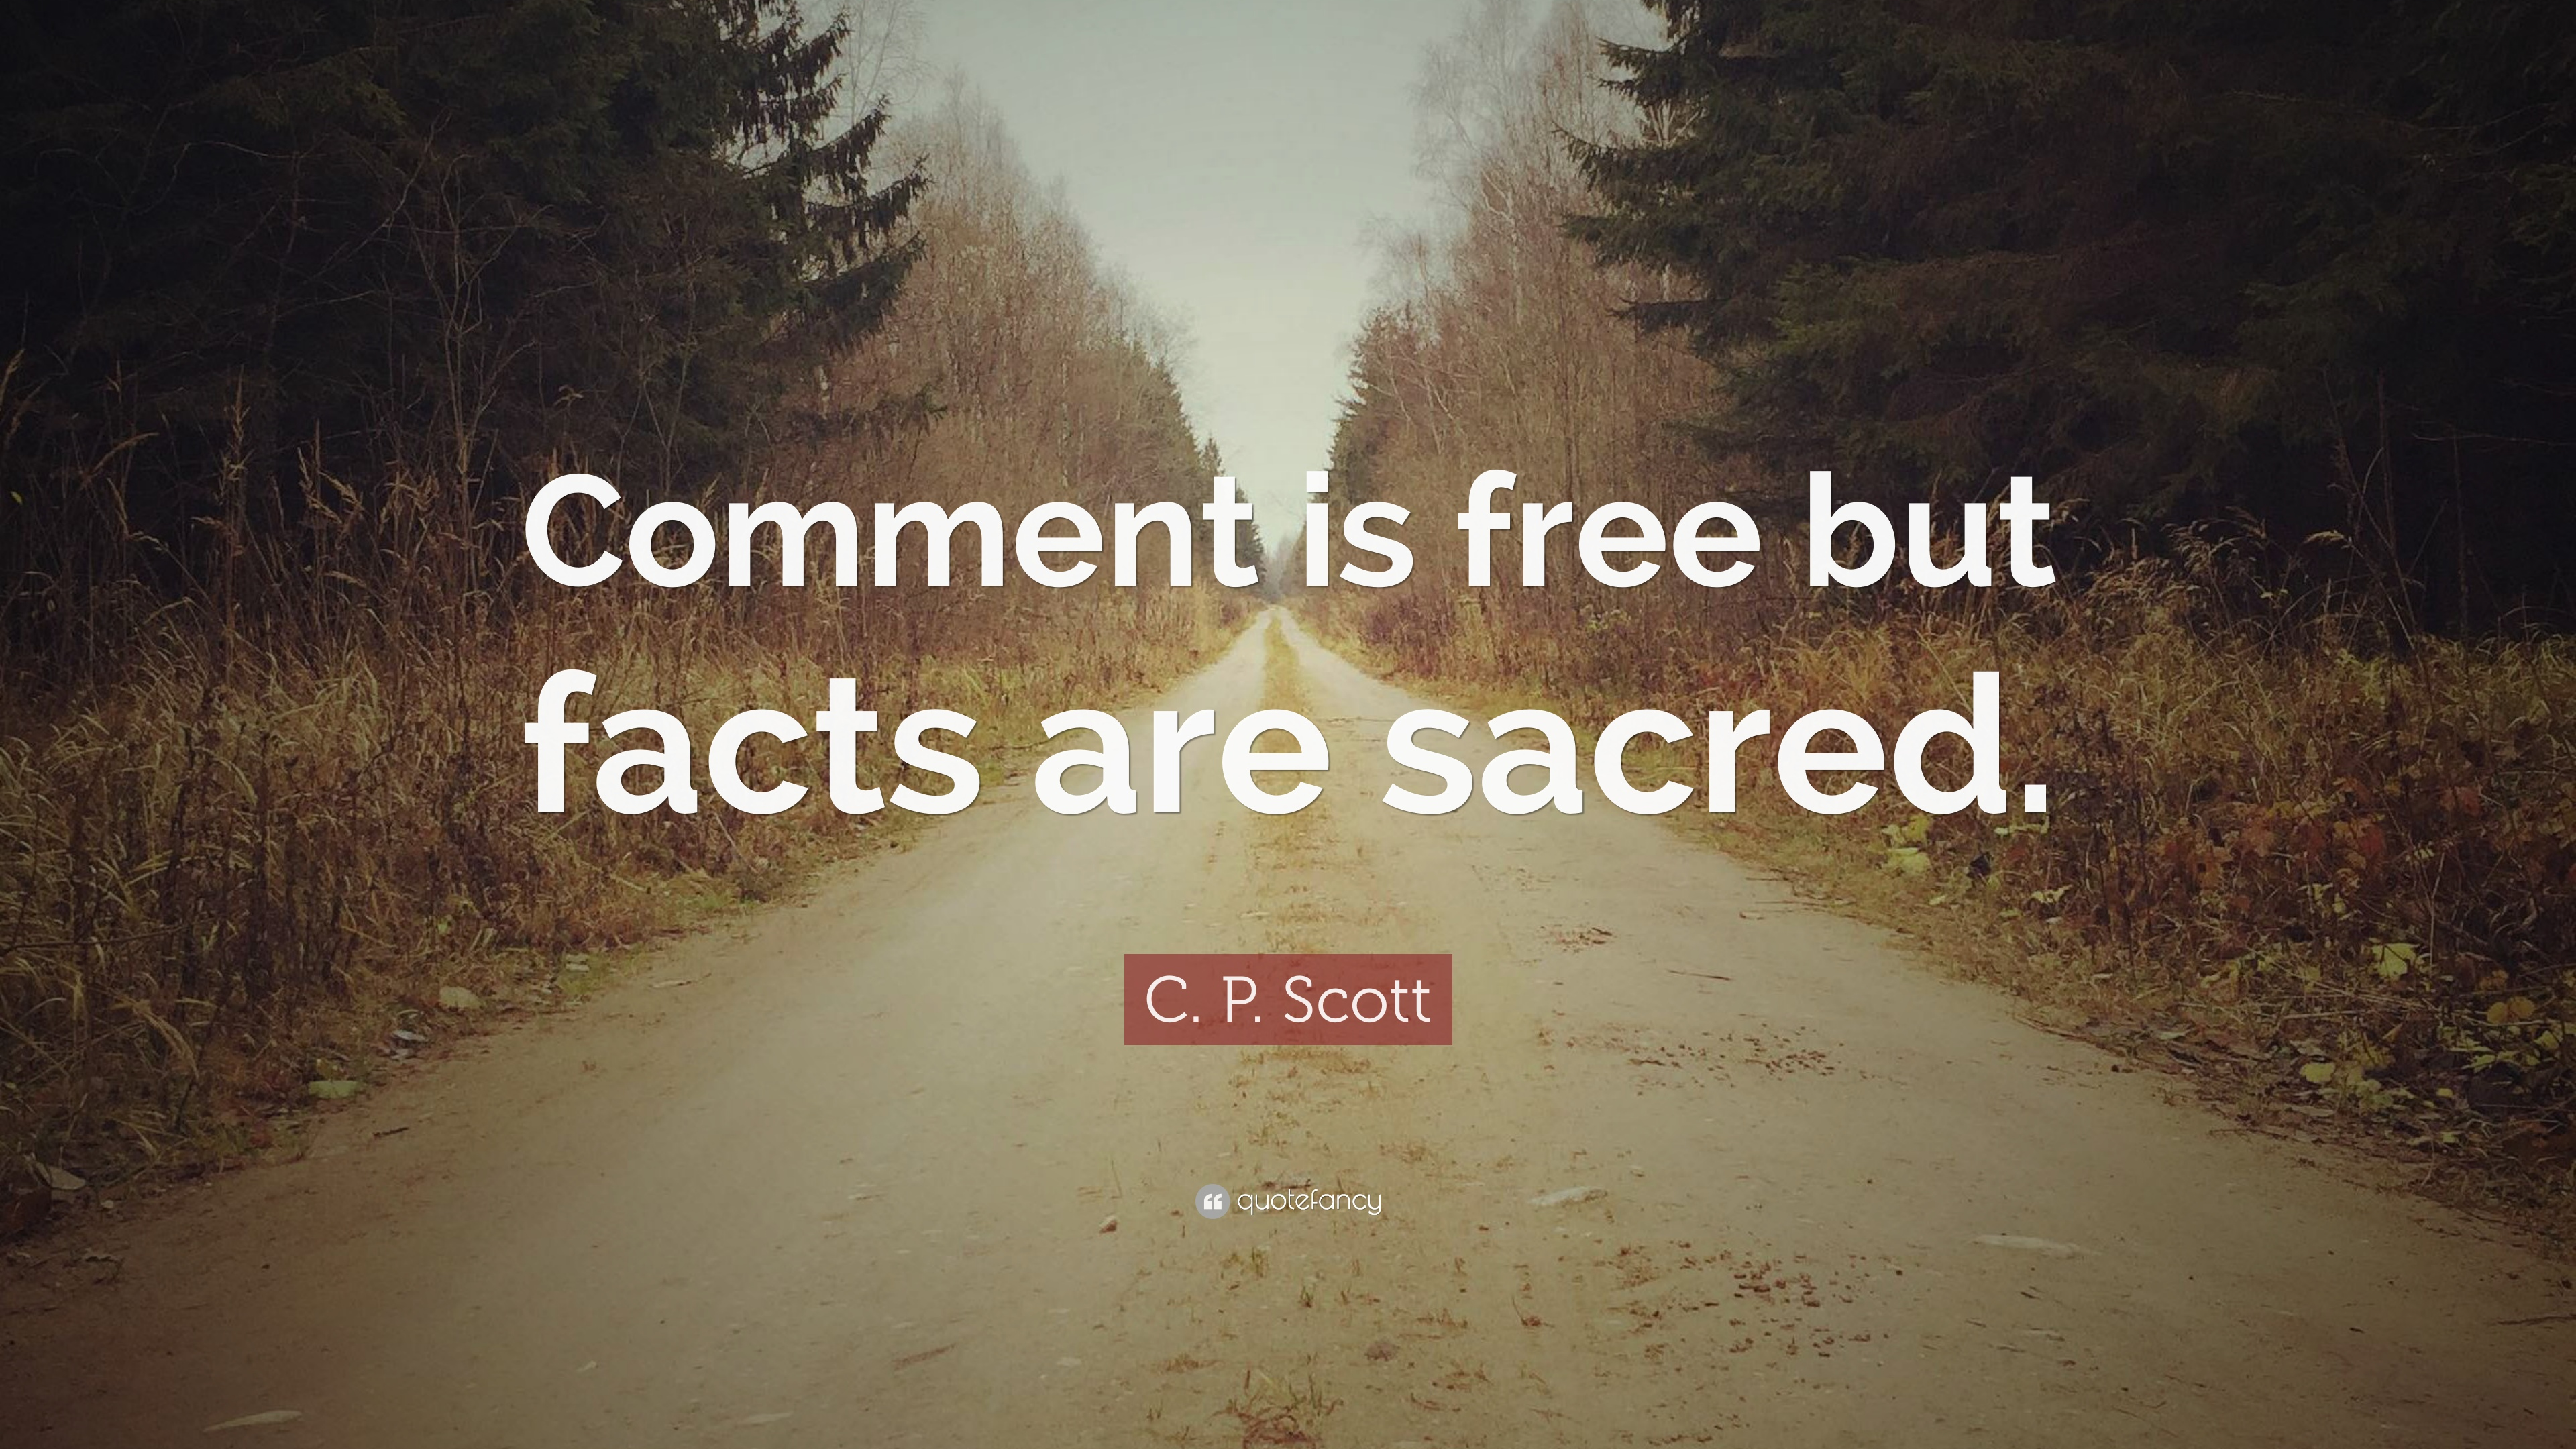 facts are sacred comment is free